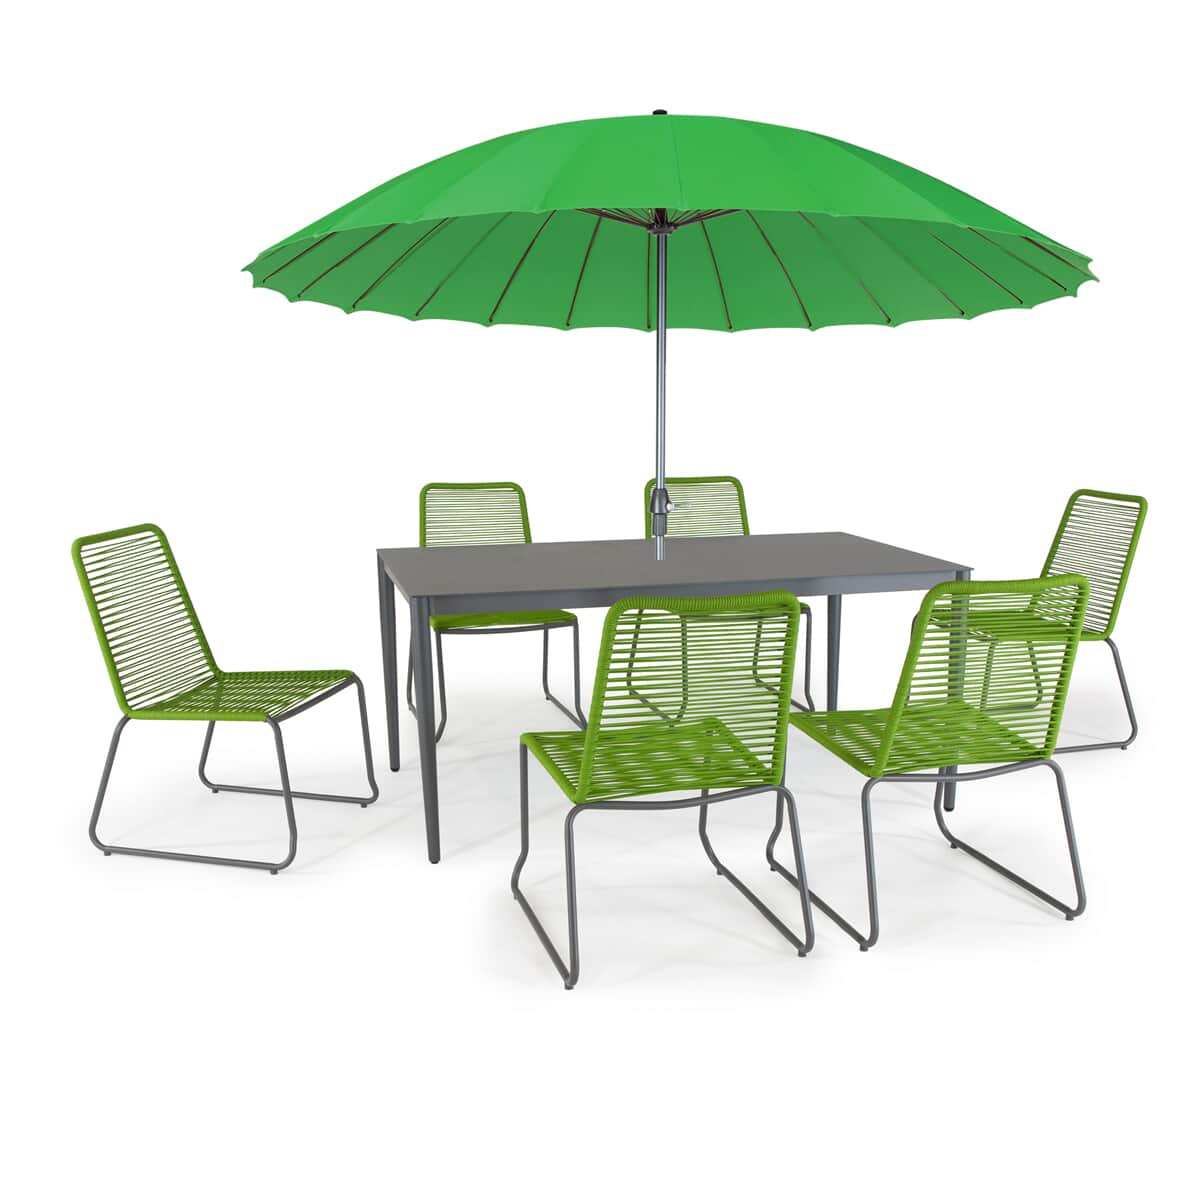 Kettler Paros 8 Seater Garden Dining Table And Chairs Set Grey: Kettler Menos Metro 6 Seat Dining Set With Parasol Green